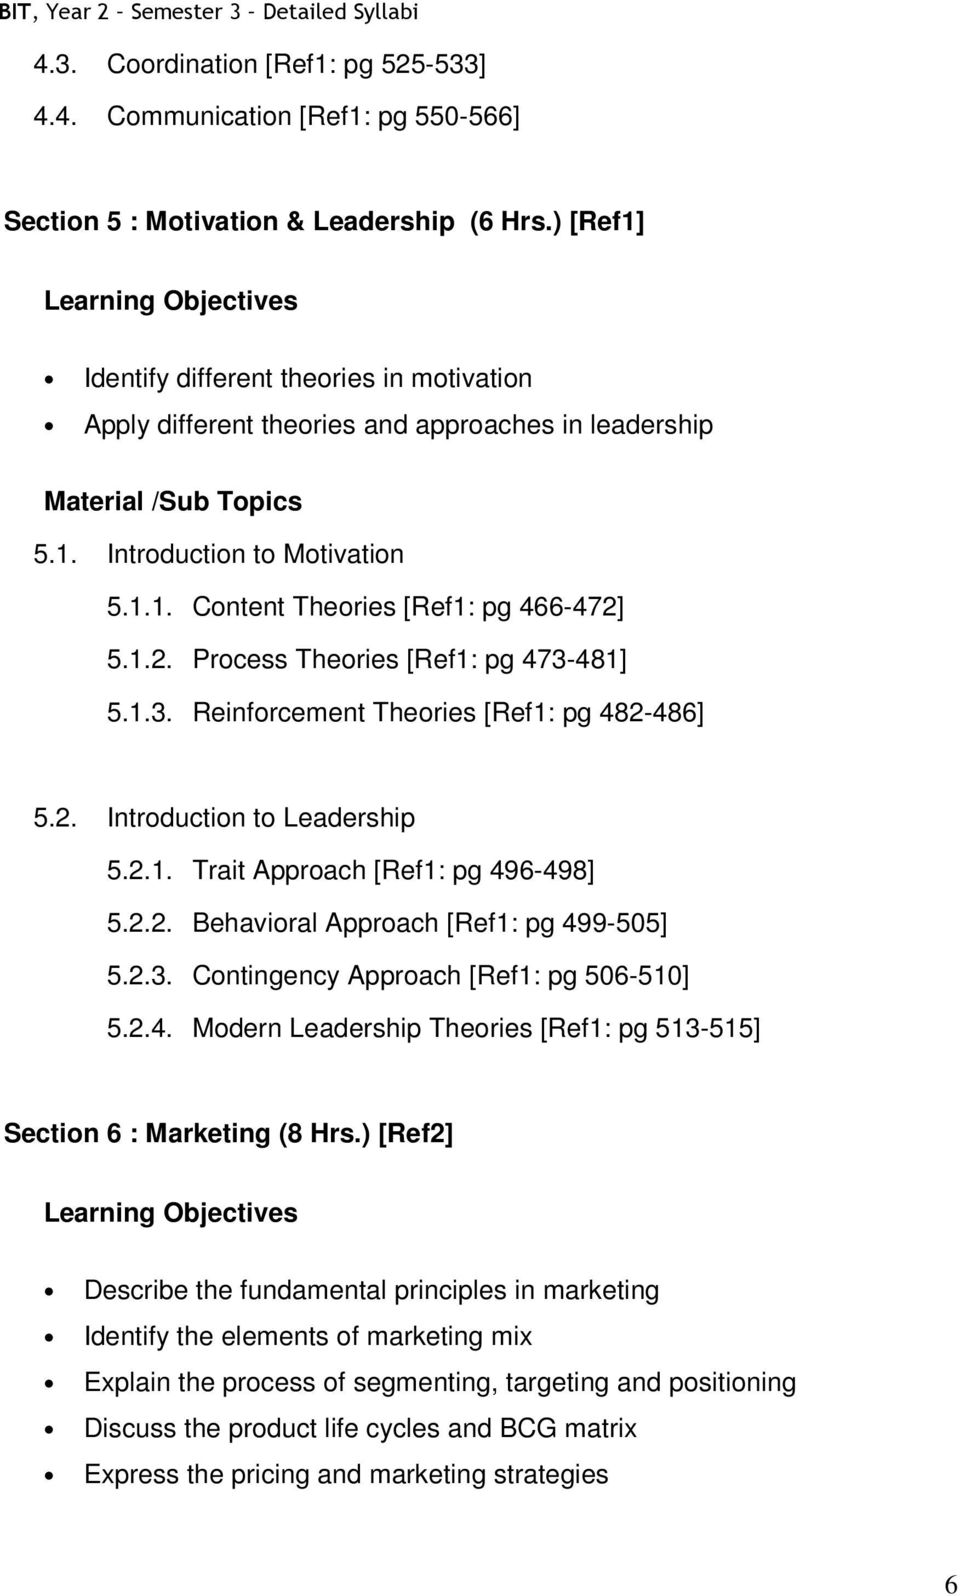 5.1.2. Process Theories [Ref1: pg 473-481] 5.1.3. Reinforcement Theories [Ref1: pg 482-486] 5.2. Introduction to Leadership 5.2.1. Trait Approach [Ref1: pg 496-498] 5.2.2. Behavioral Approach [Ref1: pg 499-505] 5.